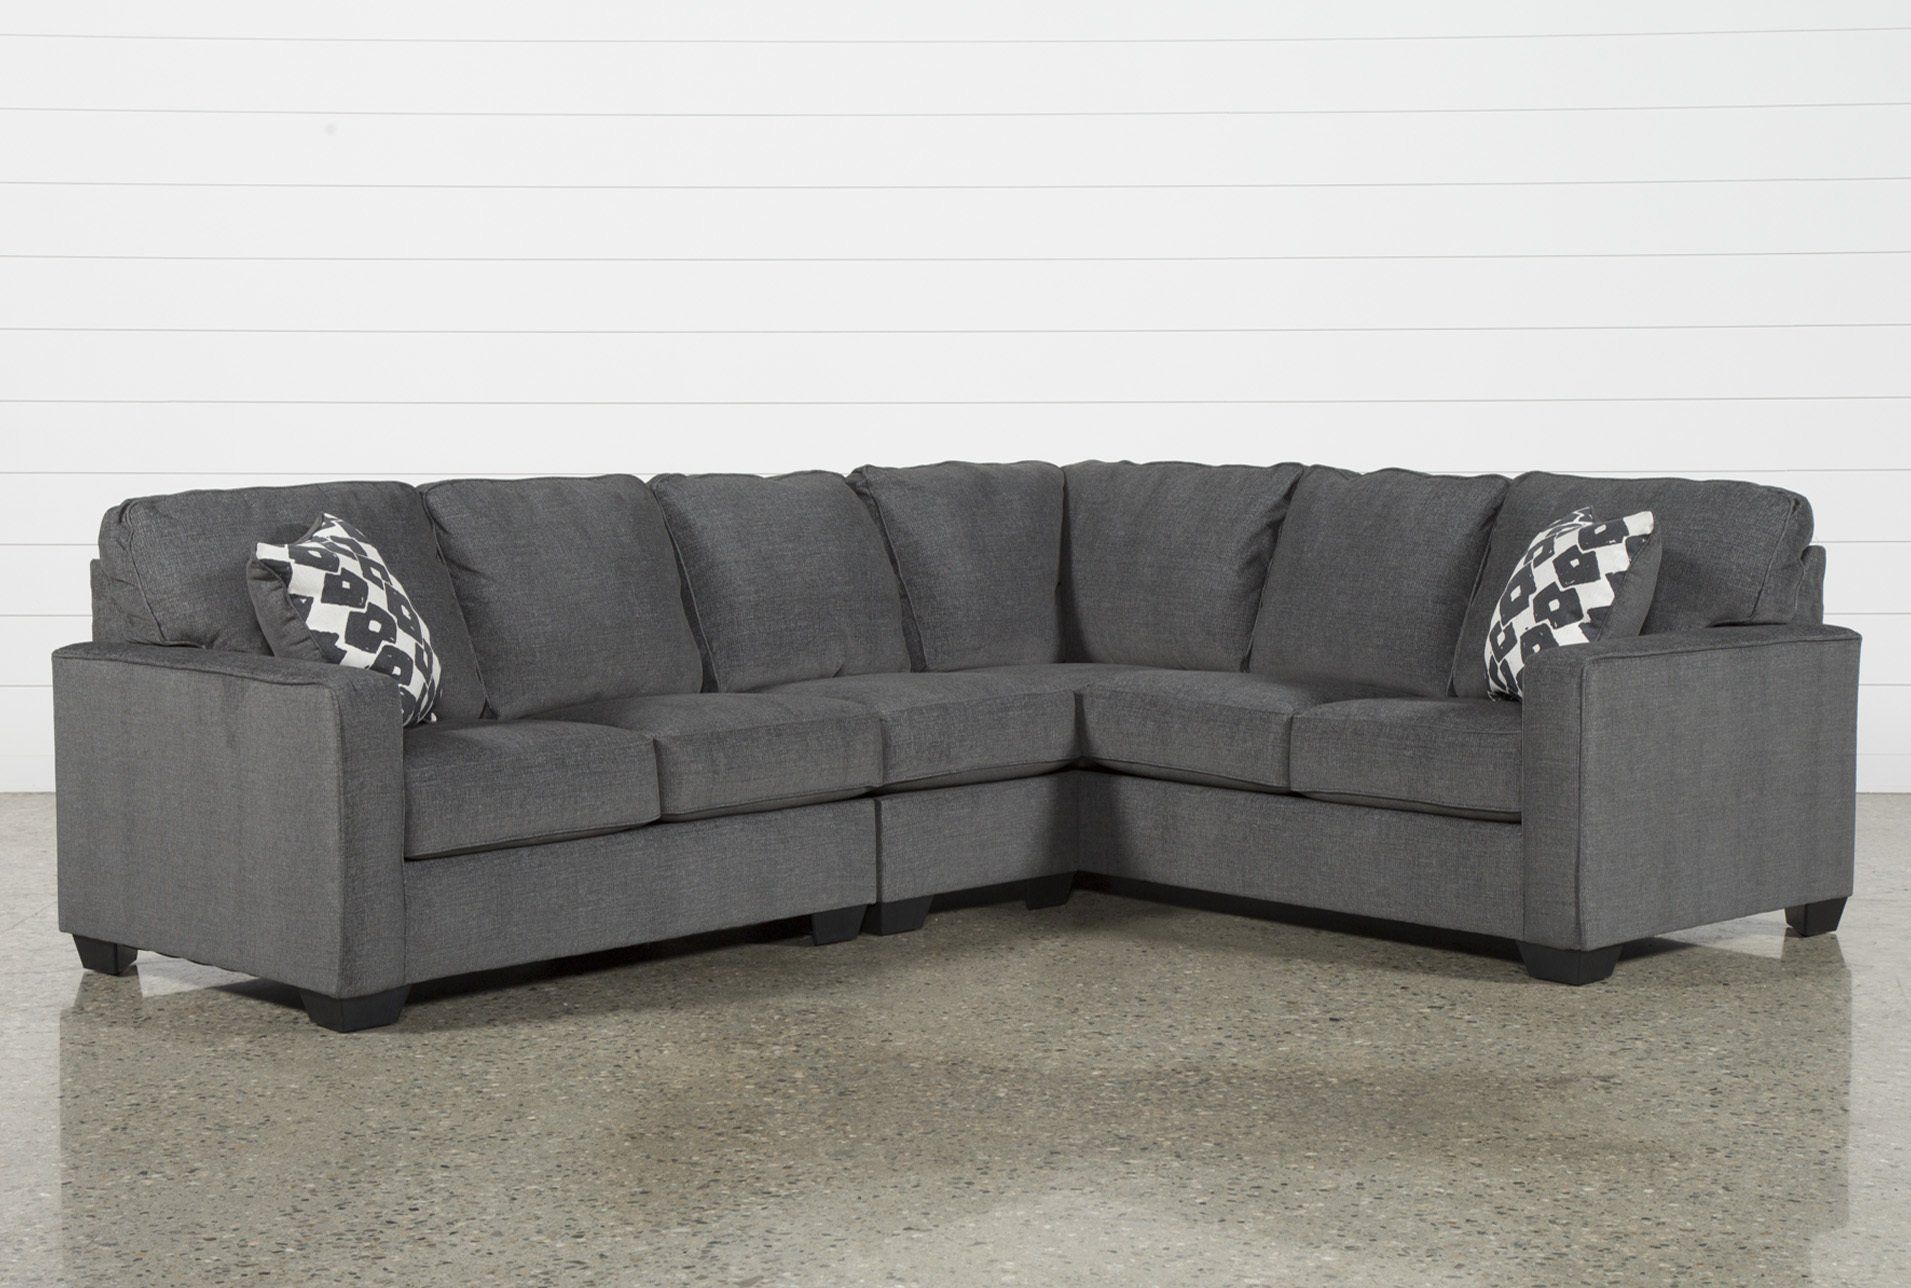 Turdur 3 Piece Sectional W/laf Loveseat With Mcdade Graphite Sofa Chairs (Image 25 of 25)